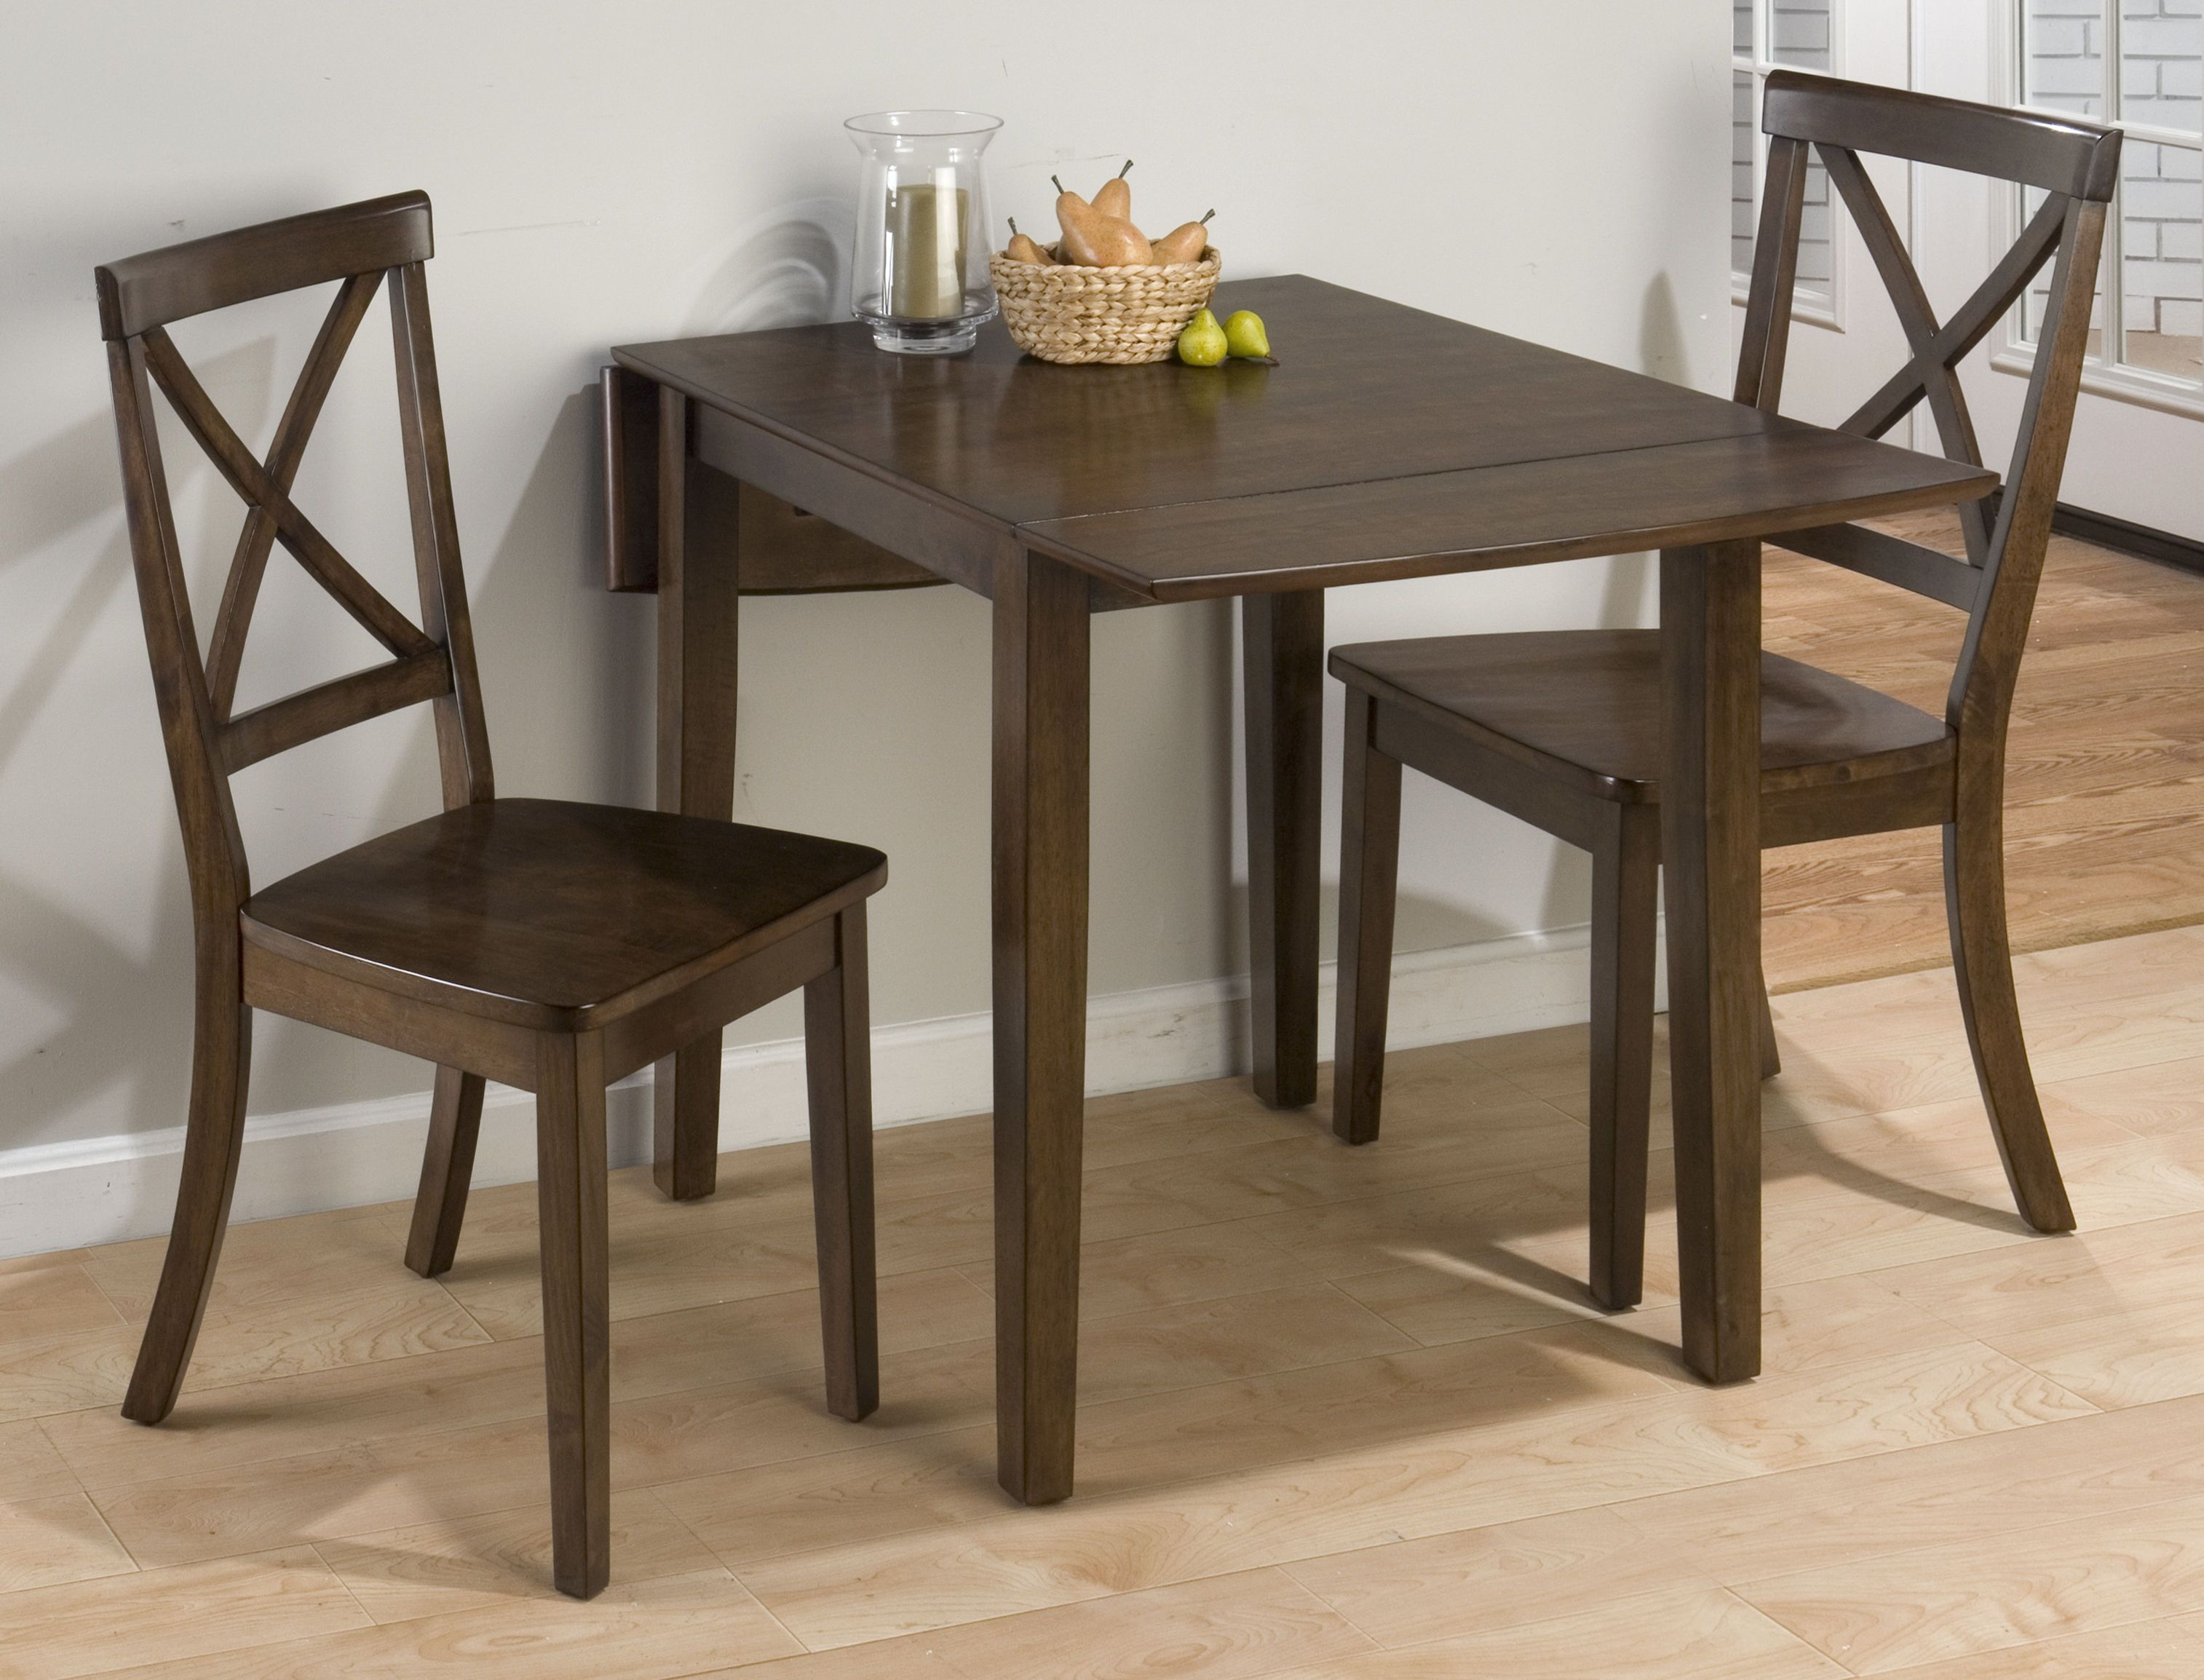 33 Chic And Elegant Kitchen Tables Kitchen Table Settings Folding Dining Table Kitchen Table With Storage